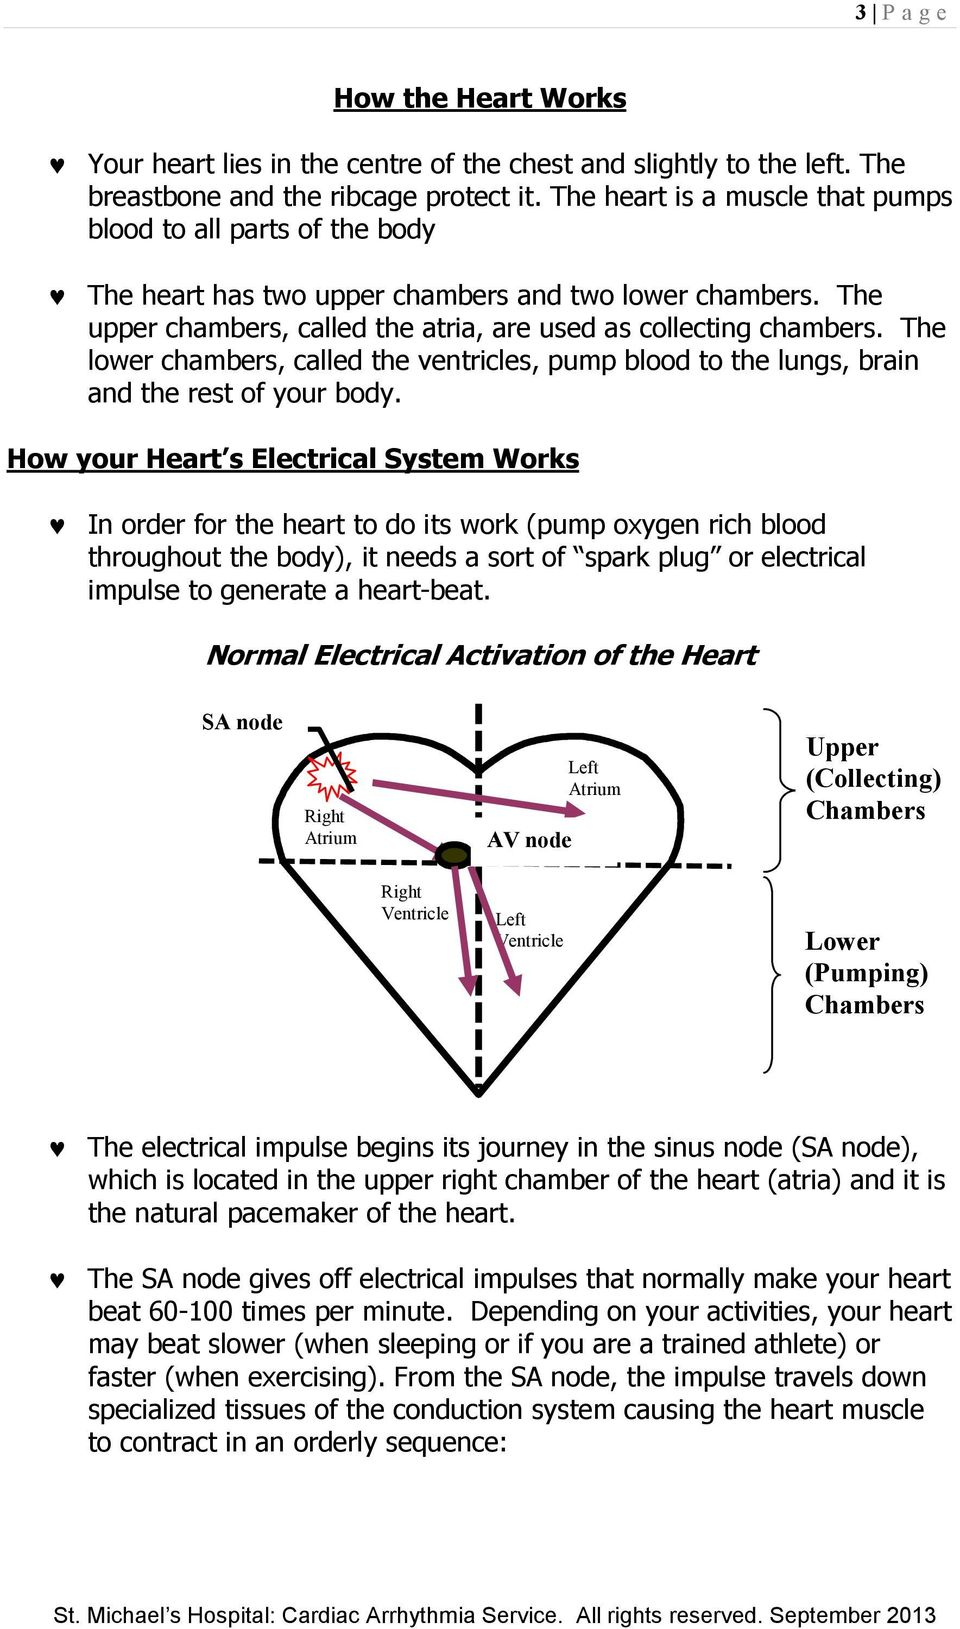 The lower chambers, called the ventricles, pump blood to the lungs, brain and the rest of your body.